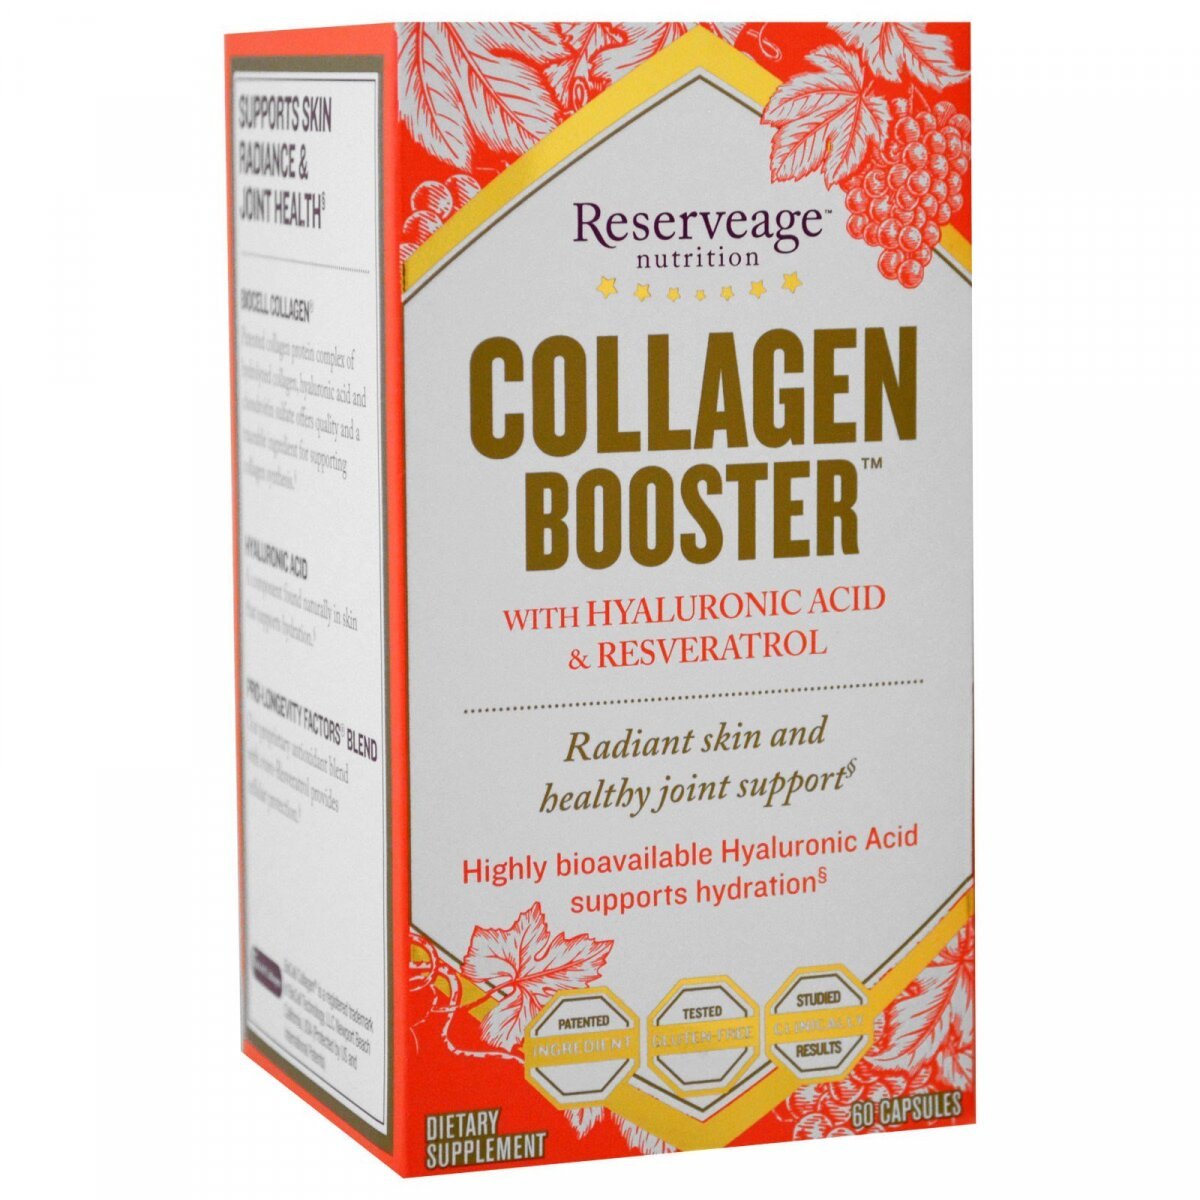 ReserveAge Nutrition, Collagen Booster, с гиалуроновой кислотой и ресвератролом, 60 капсул